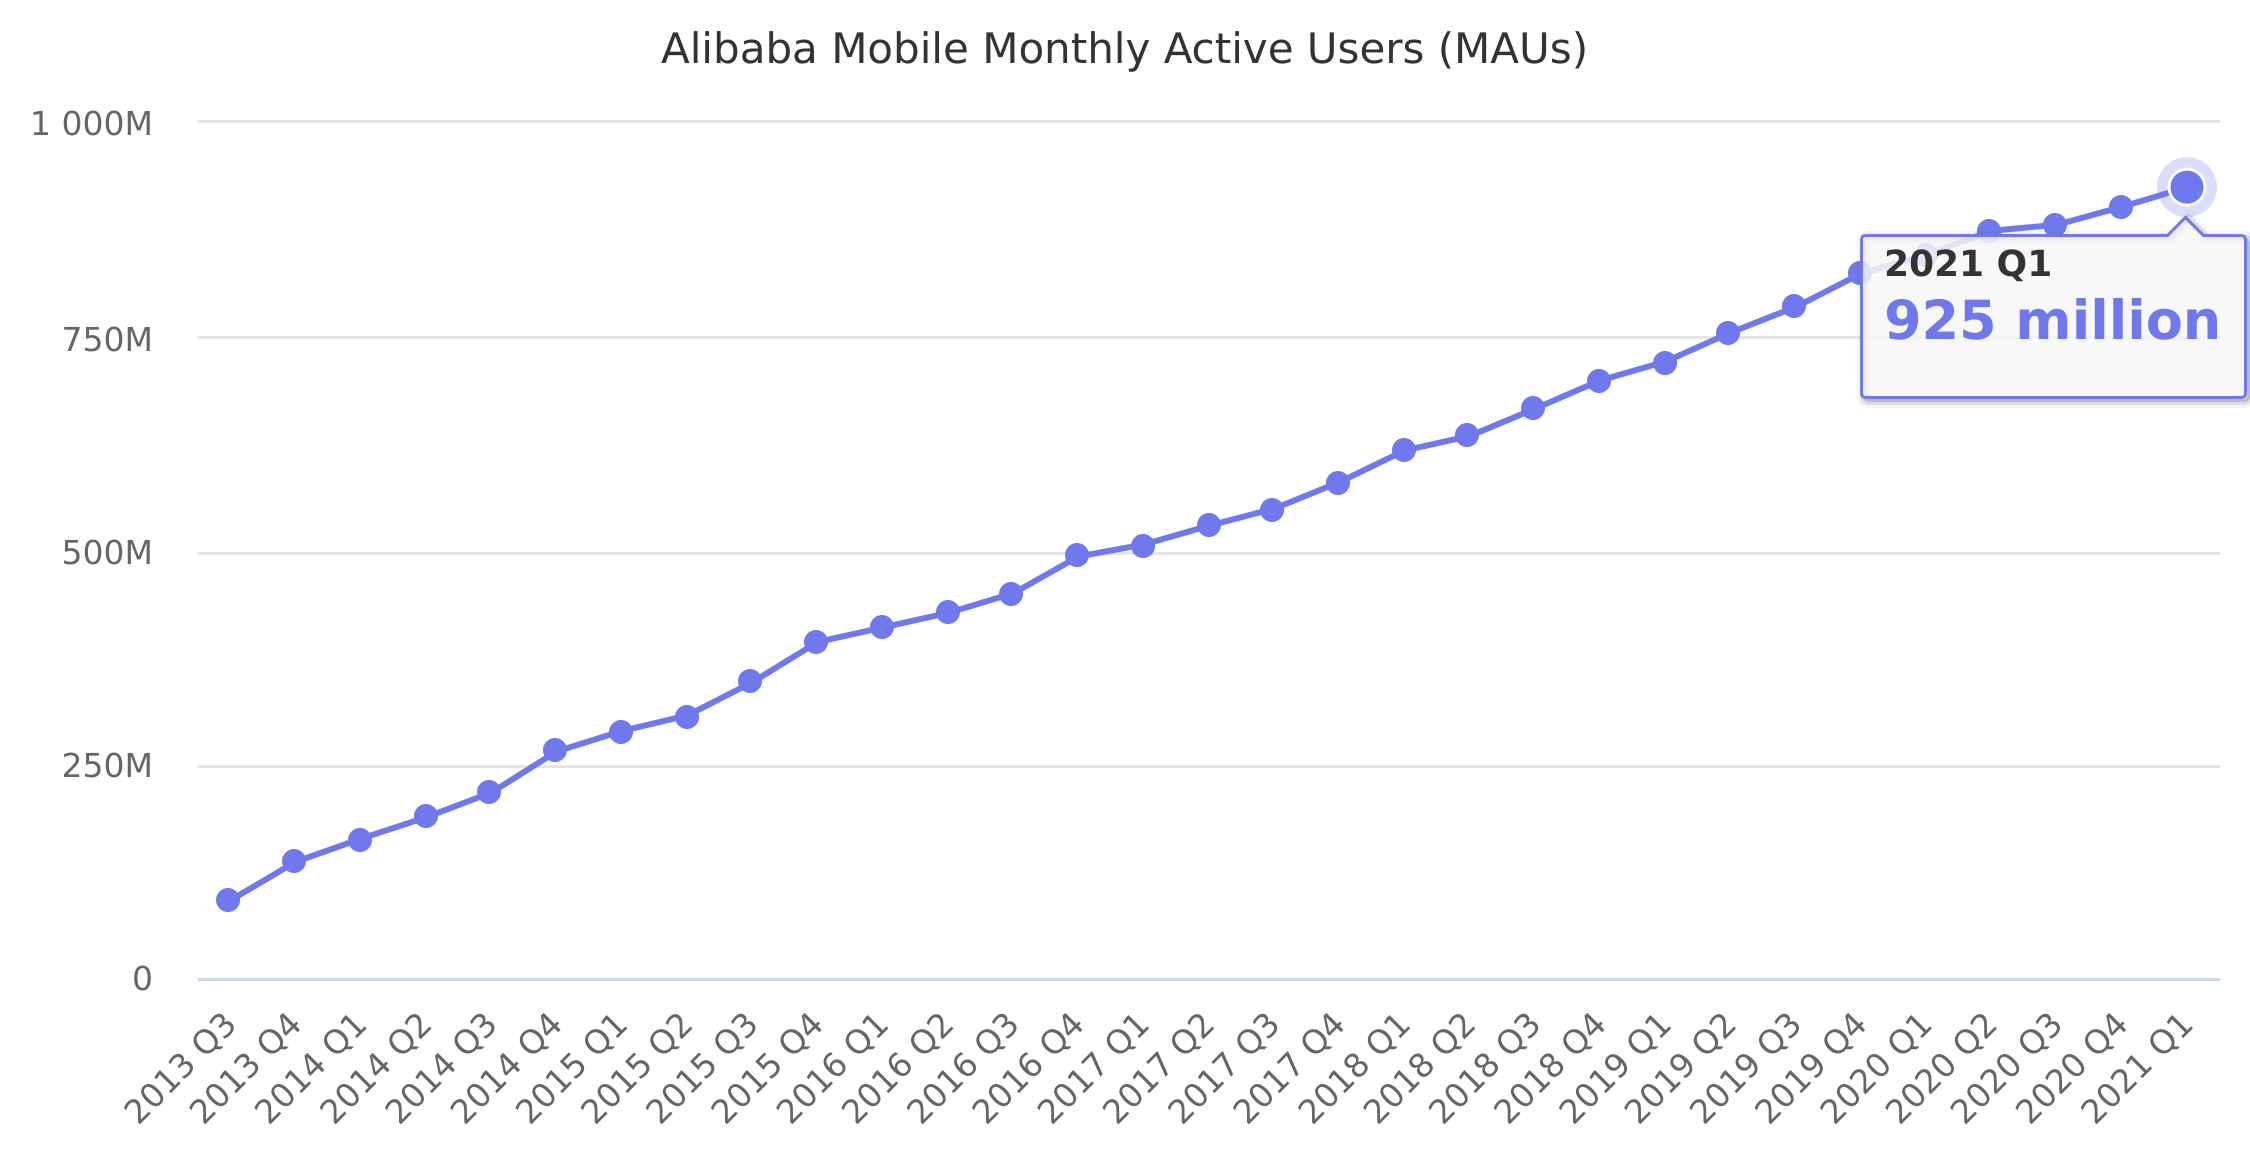 Alibaba Mobile Monthly Active Users (MAUs) 2013-2019